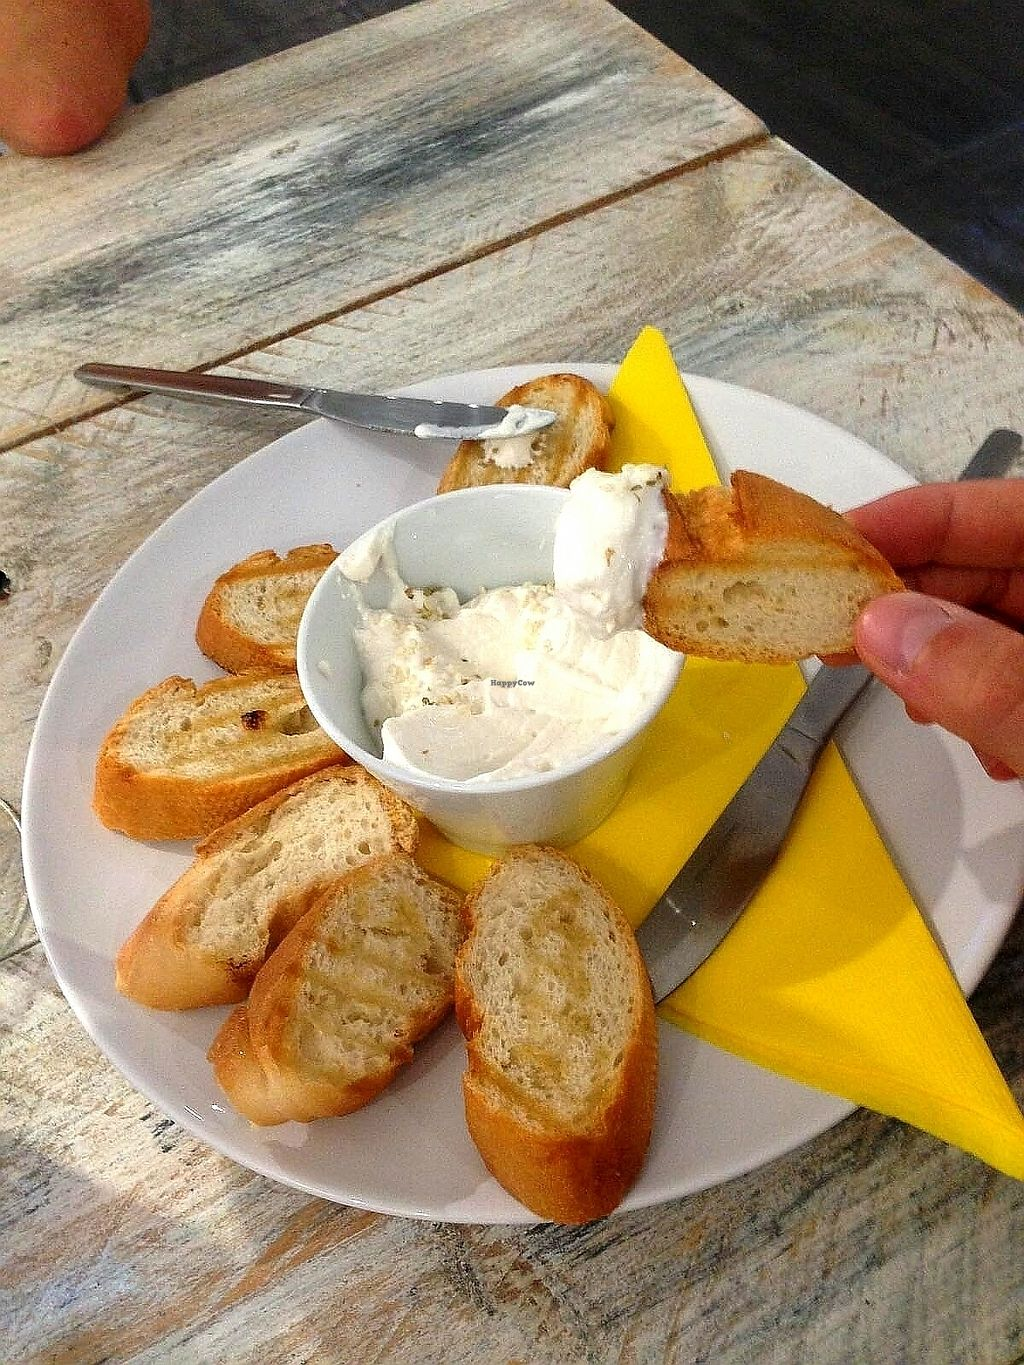 """Photo of Vegan Ibiza  by <a href=""""/members/profile/wyrd"""">wyrd</a> <br/>Bread with garlic sauce <br/> August 24, 2017  - <a href='/contact/abuse/image/93478/296836'>Report</a>"""